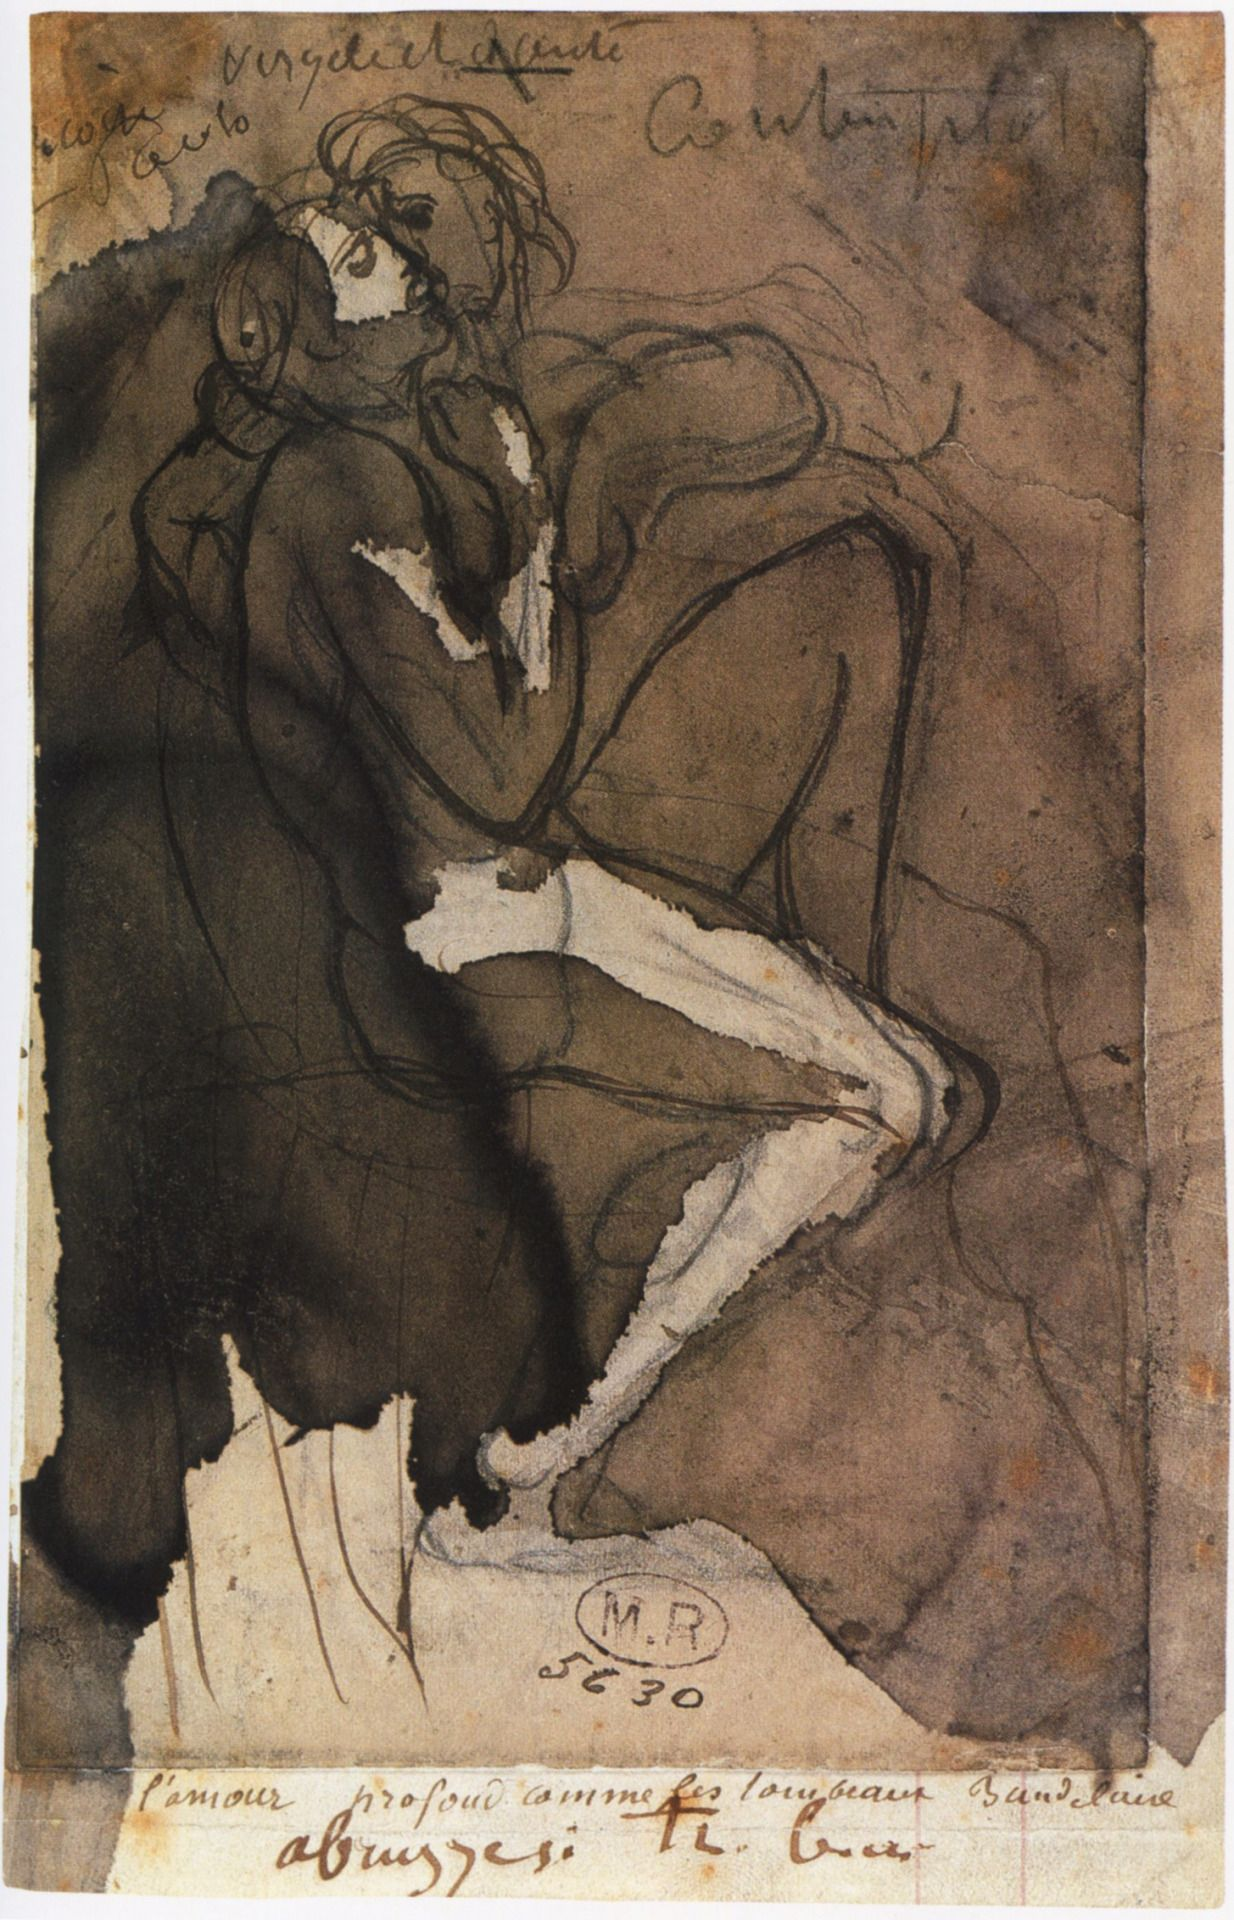 The circle of love  1885 Auguste Rodin.Annotated, top: Françoise Paolo / Virgile and Dante / Contemplations;below:, on support: l'amour profond comme les tombeaux Baudelaire / abruzzesi très beau